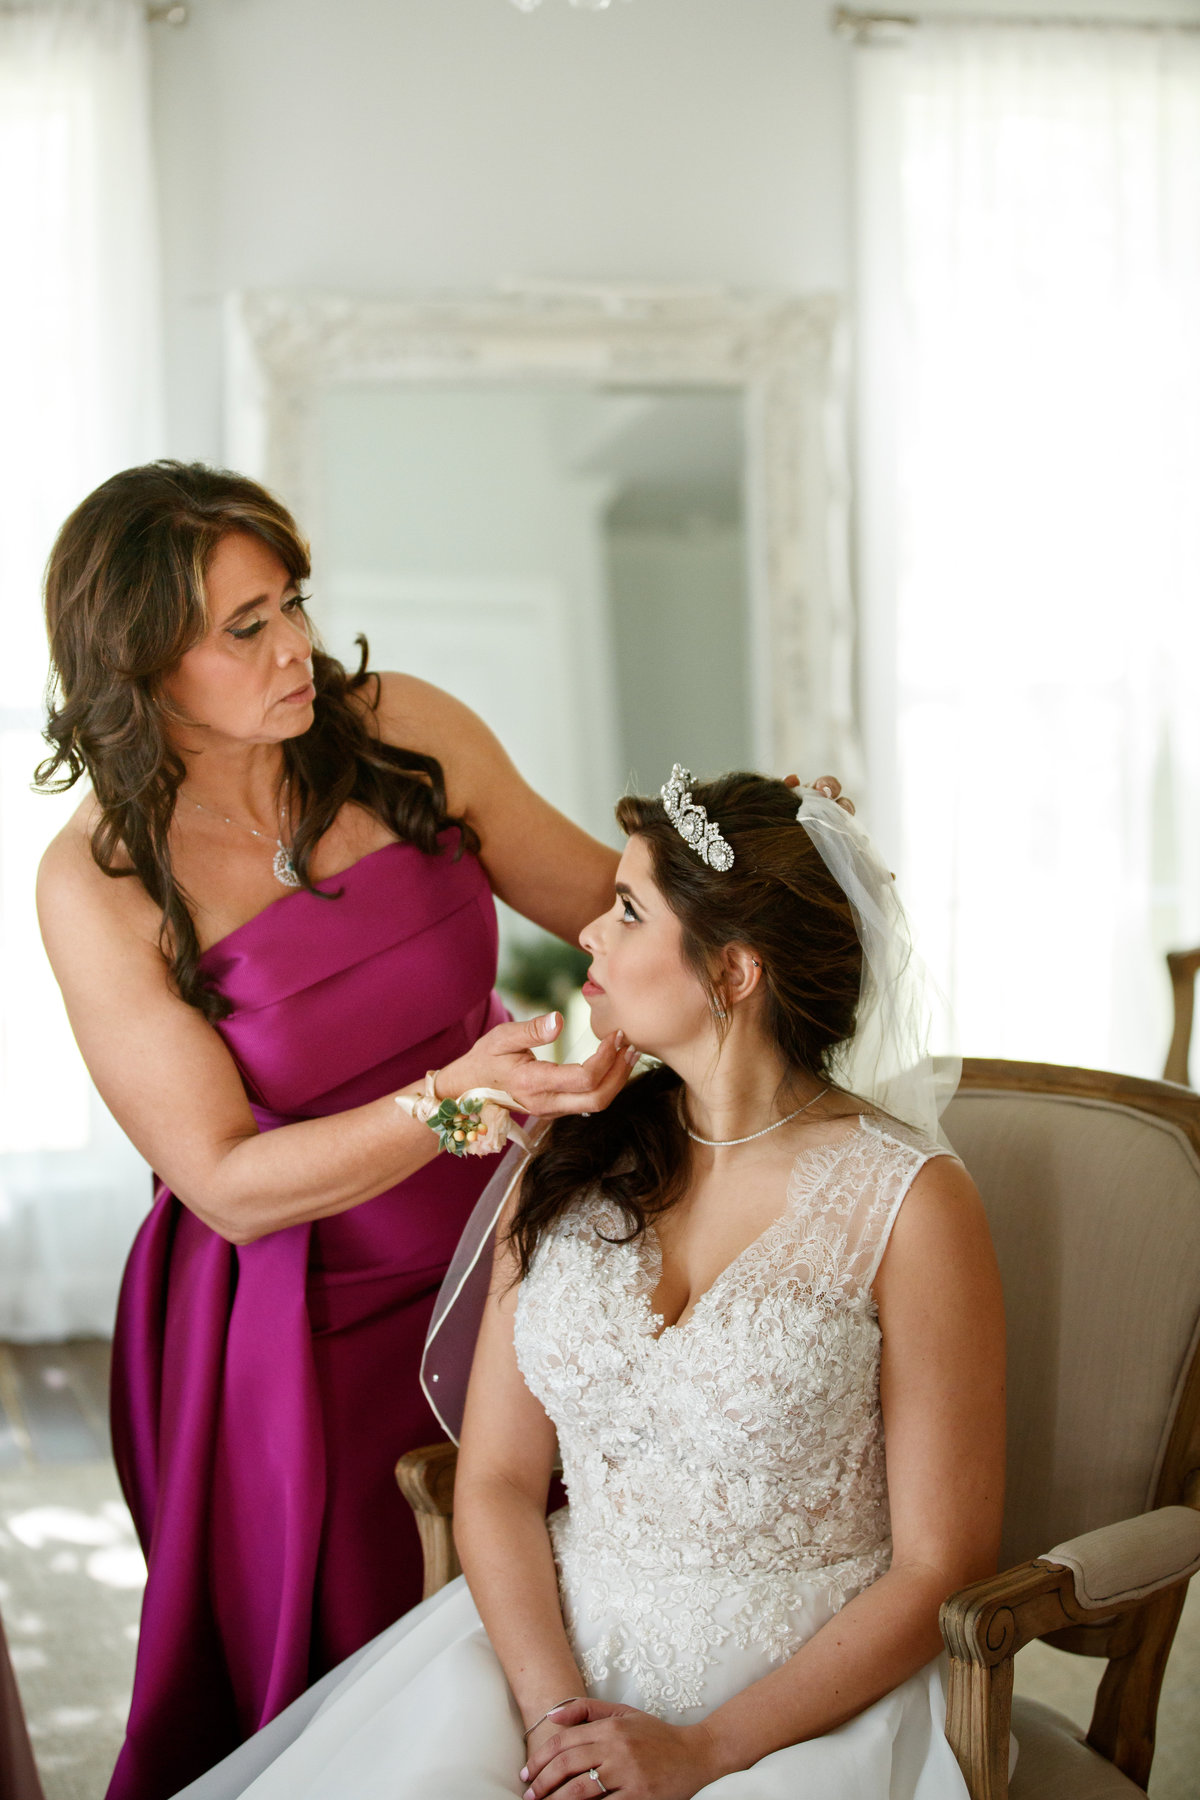 addison grove wedding photographer bride mom private moment 11903 Fitzhugh Rd, Austin, TX 78736